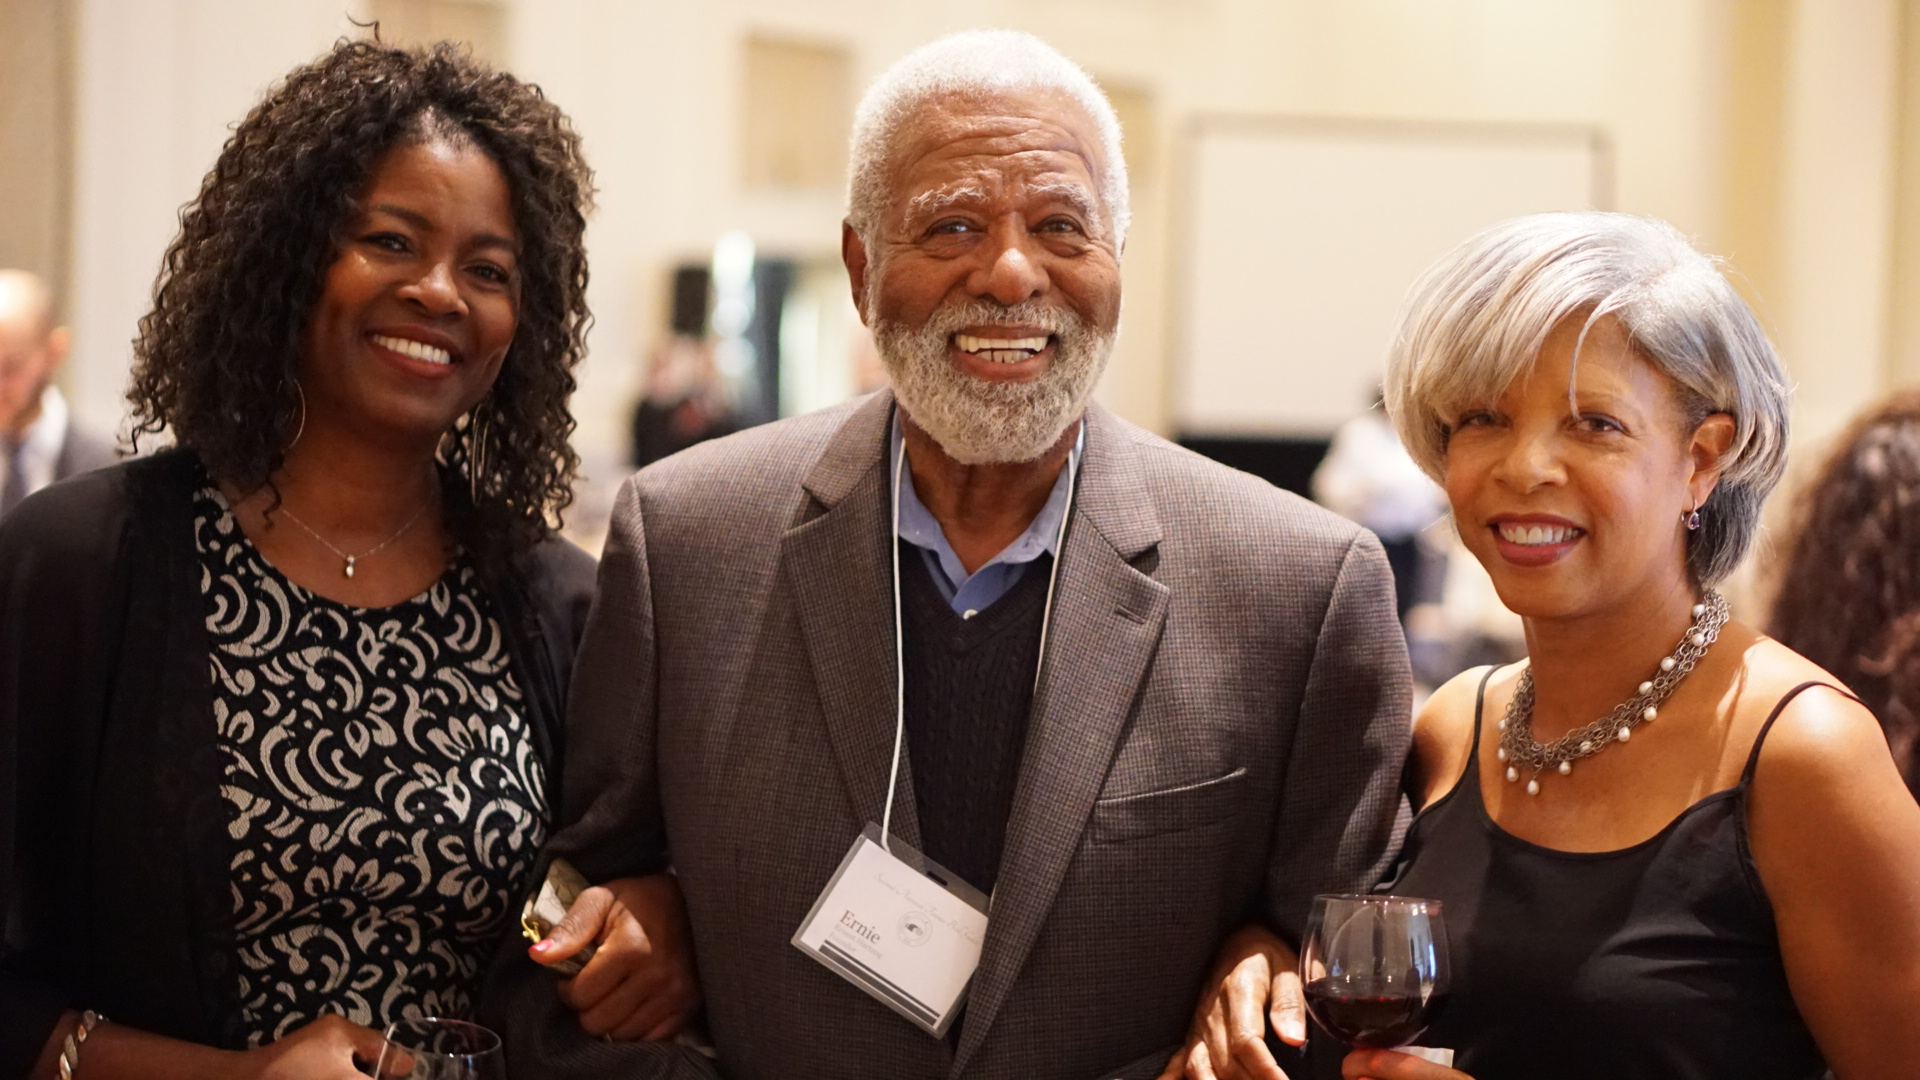 Dr. Ernest E. Hartzog, Founder - We are so fortunate to have a founder that is still closely involved with the organization and who's family continues to unconditionally provide support to the program. In this photo, Dr. Hartzog is pictured with his two daughters, Brenda and Sharon, at PT&E's 2017 Fall Gala.